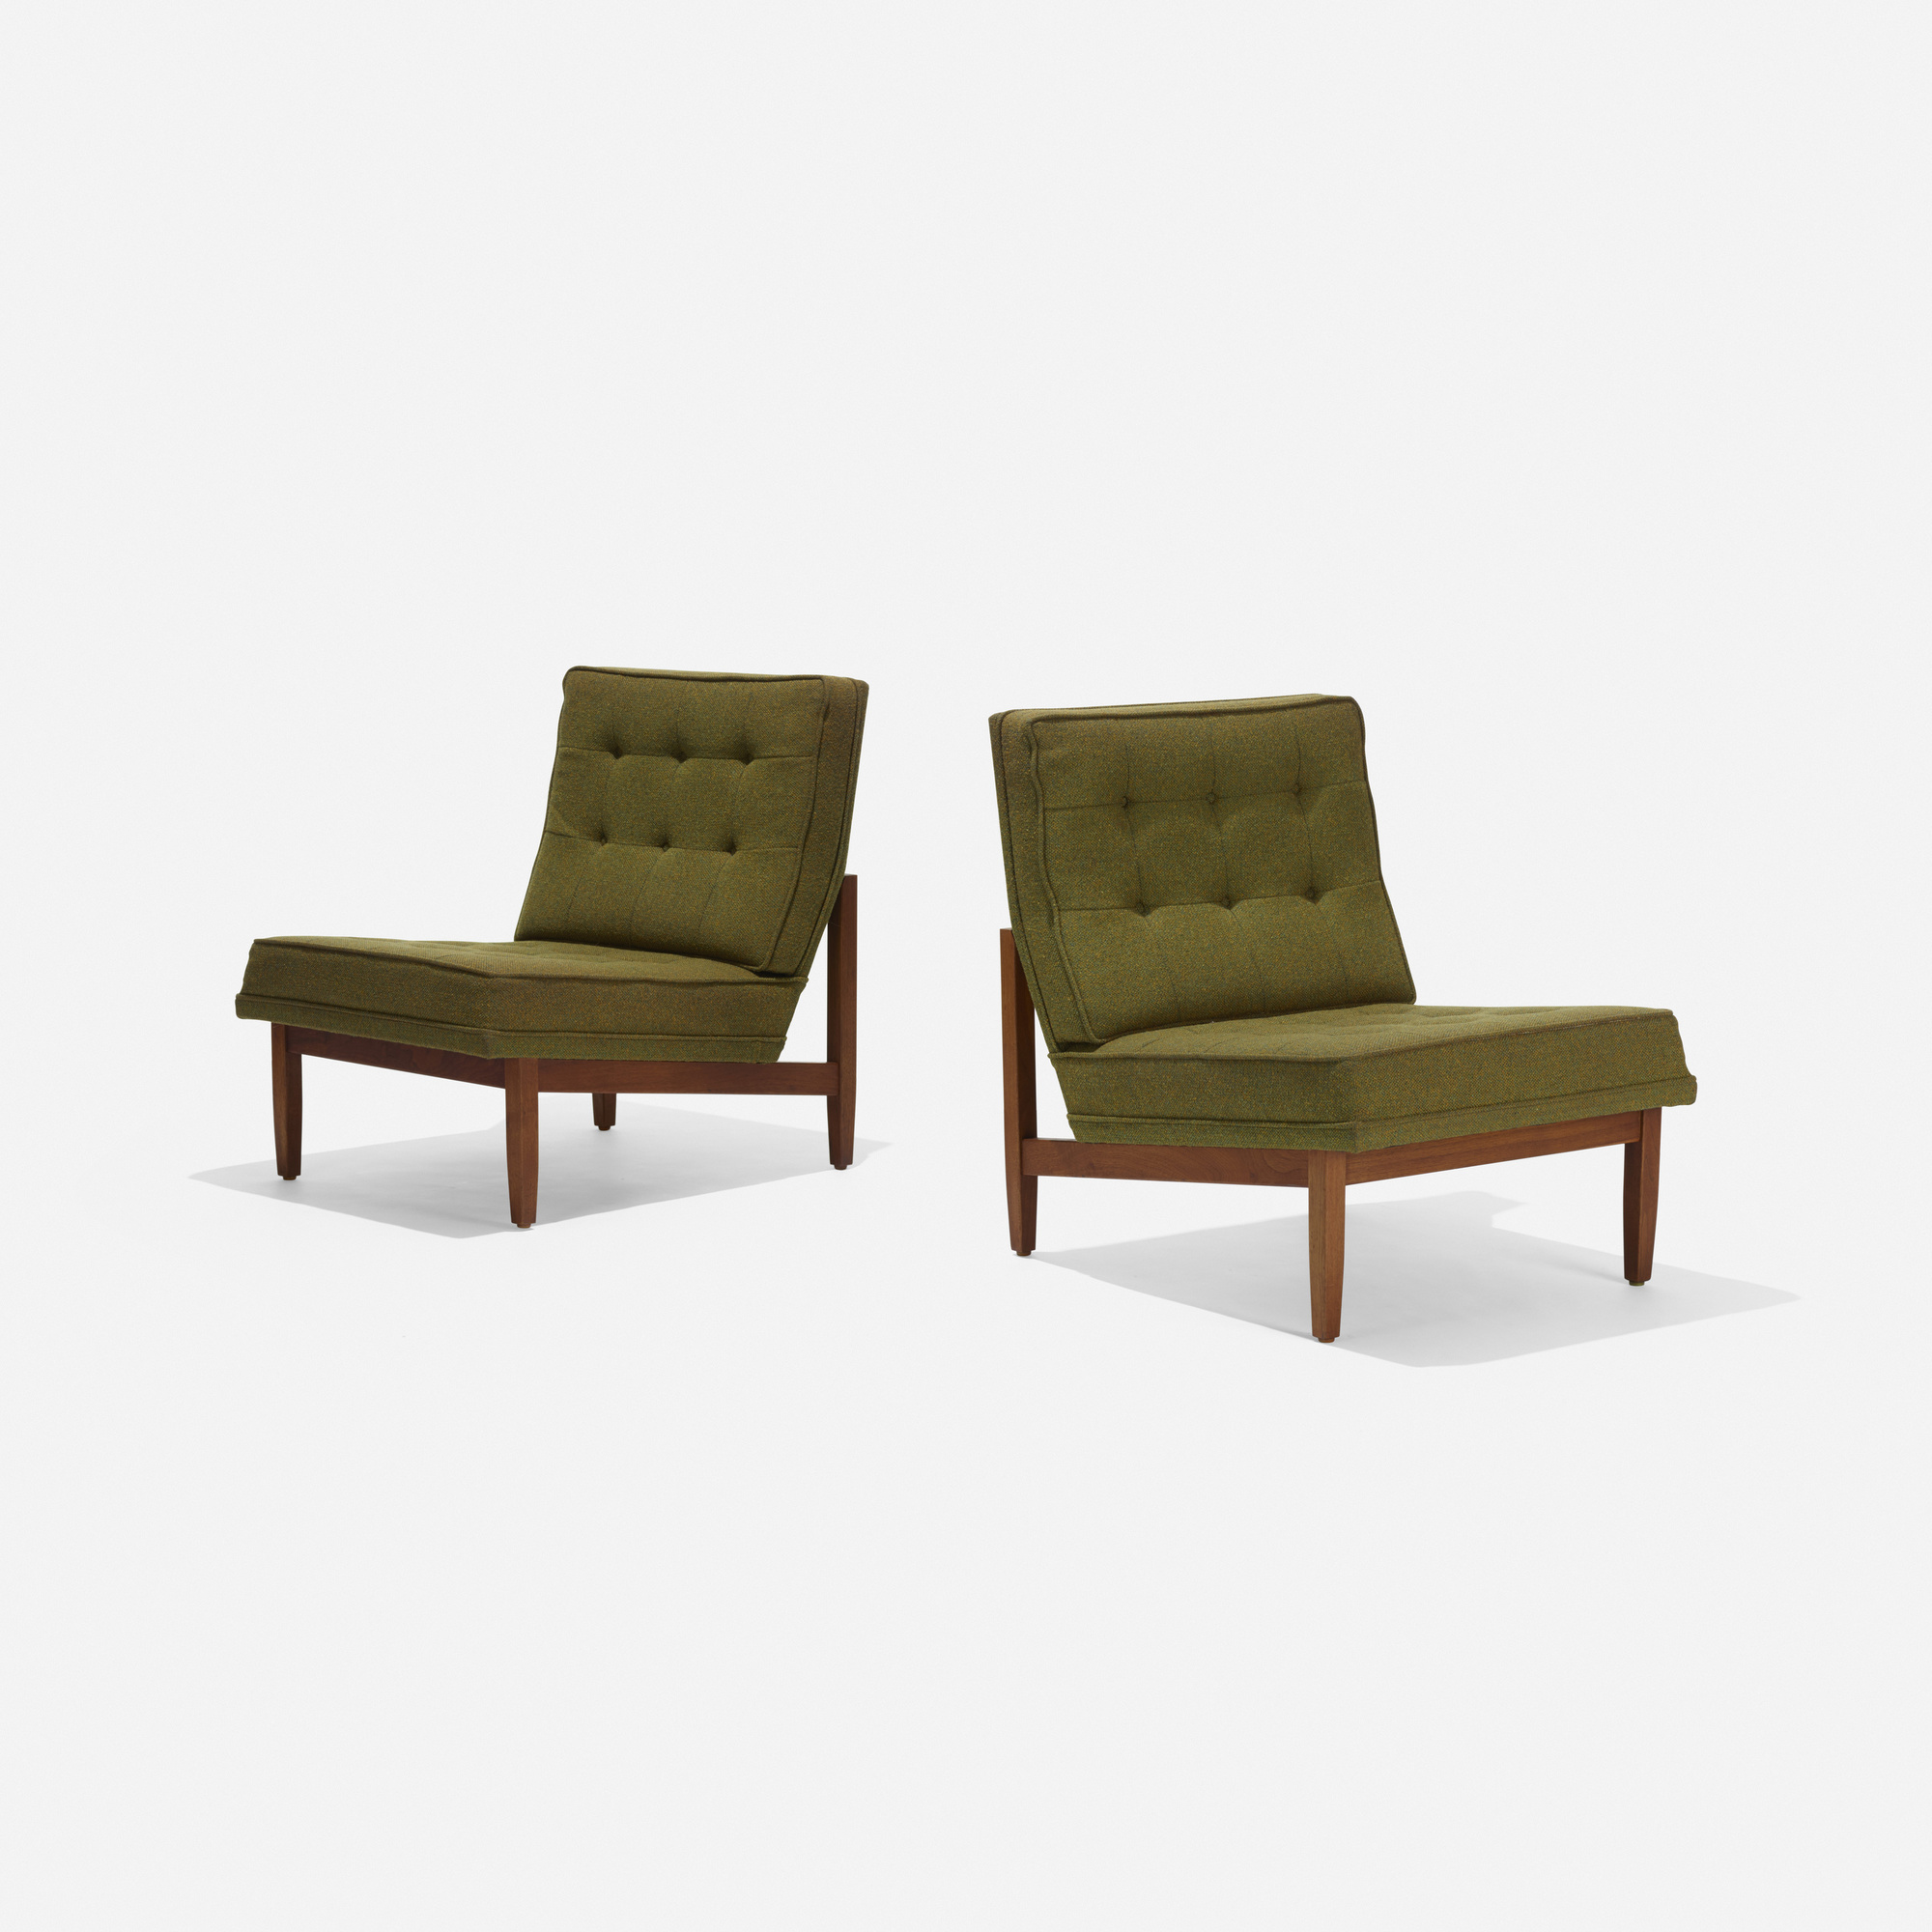 111: Florence Knoll / lounge chairs, pair (1 of 3)